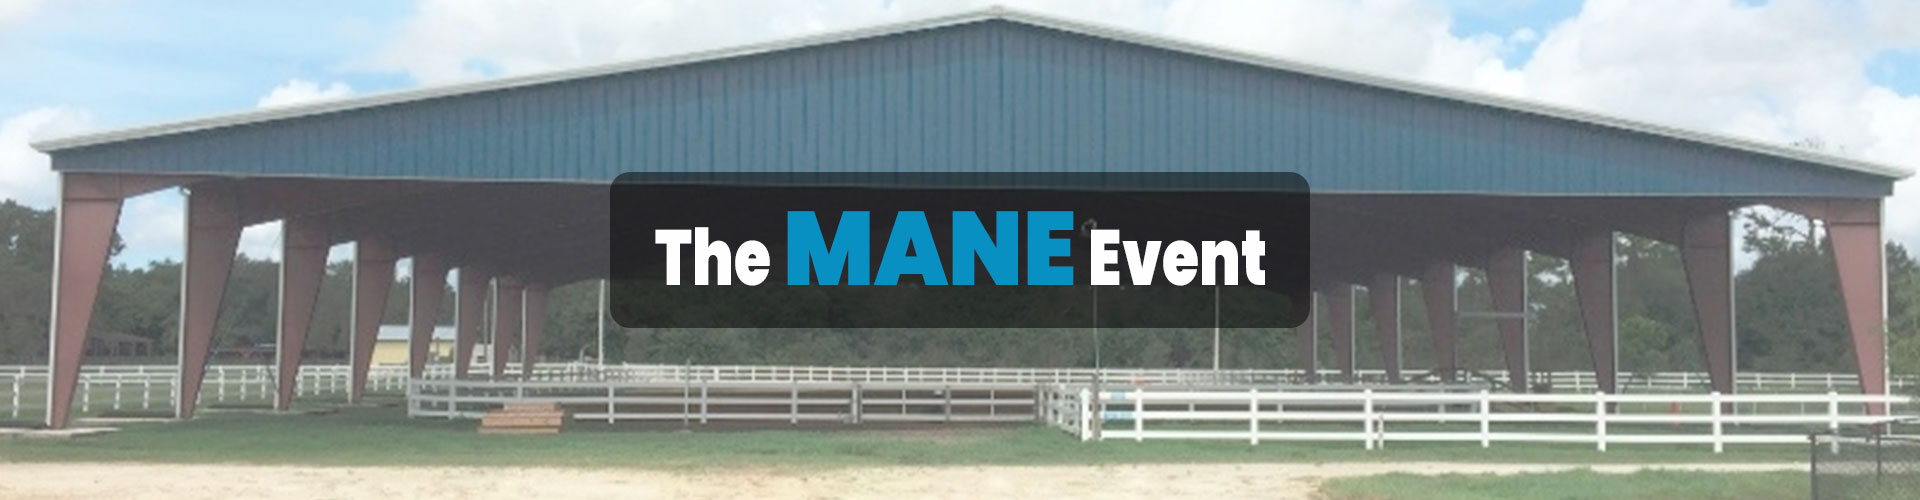 The-MANE-Event-Heading-no-date